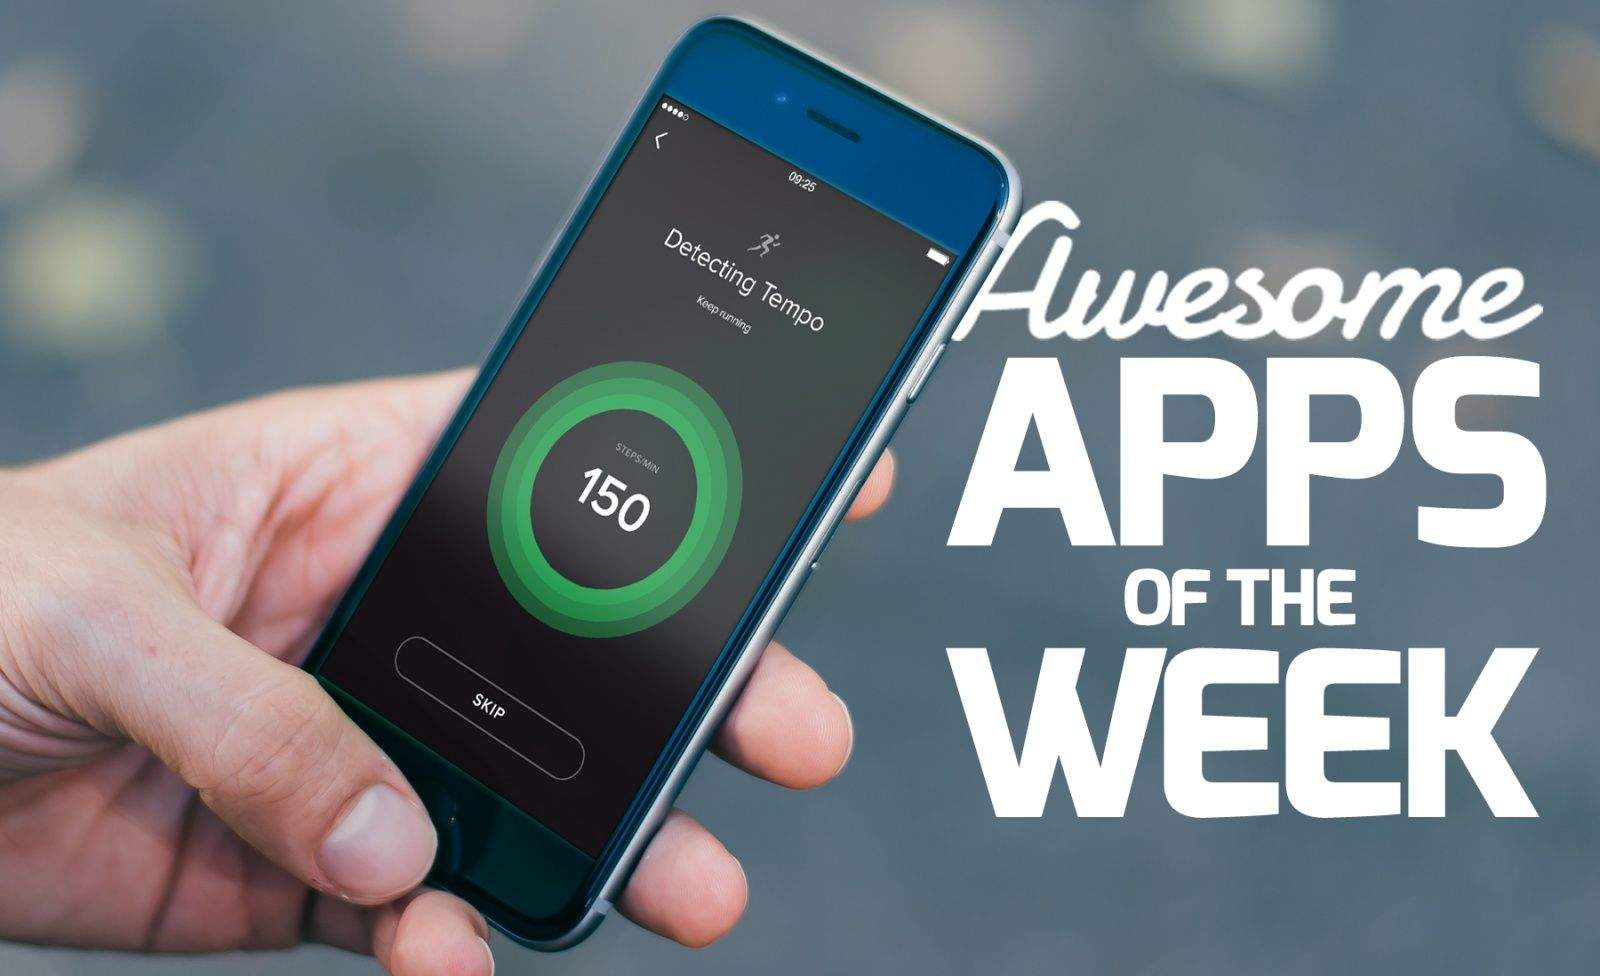 Awesome-Apps-of-the-Week1